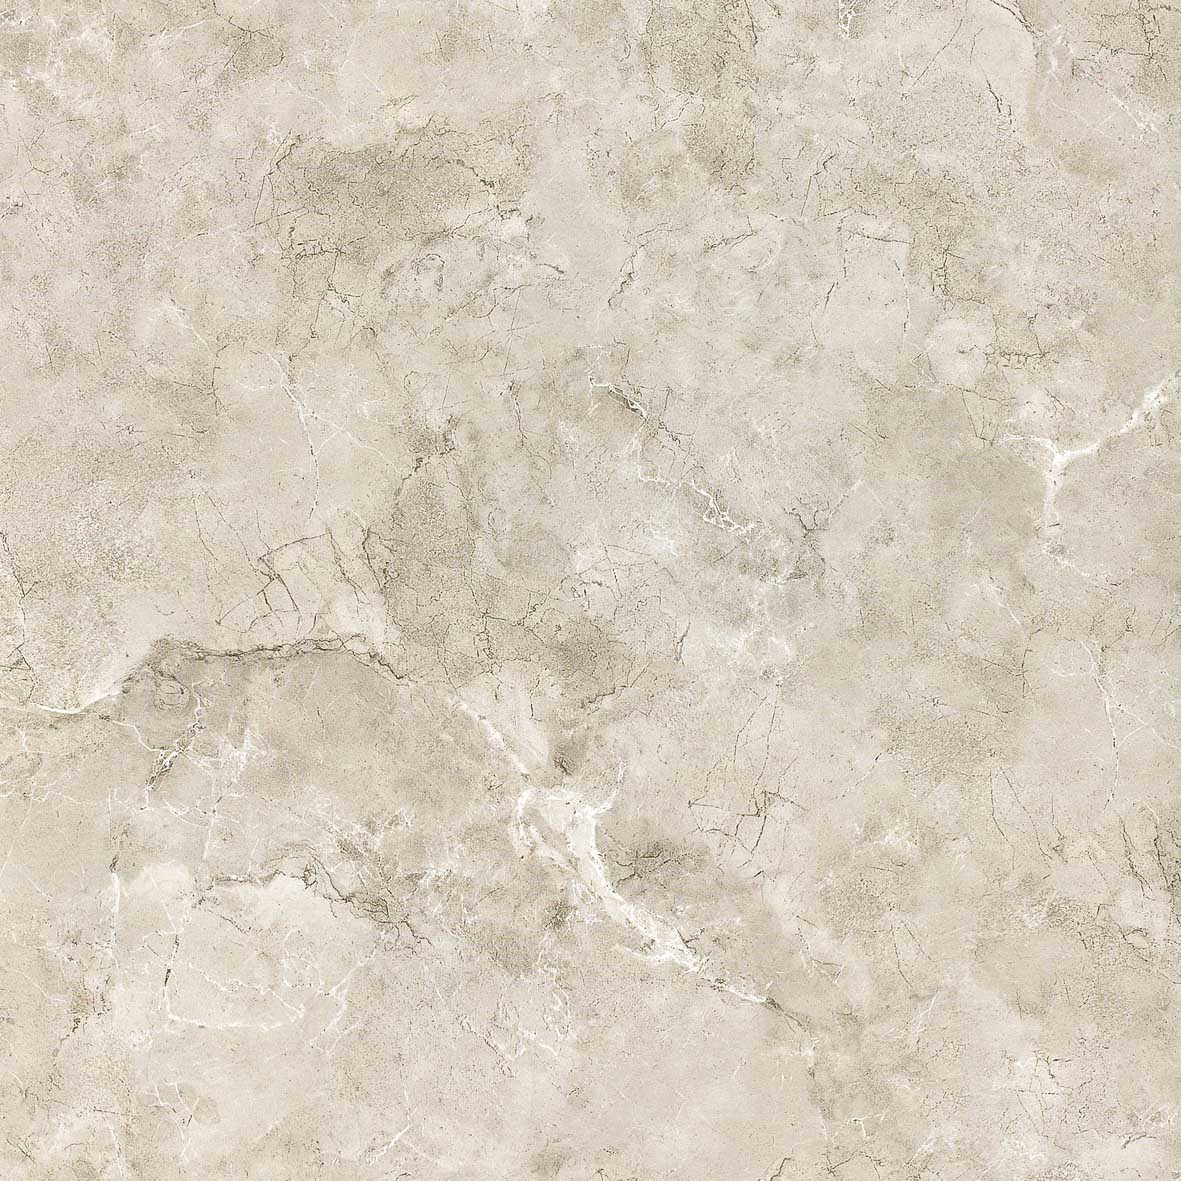 China building material floor tile portugal gray marble design building material floor tile portugal gray marble design glazed porcelain floor tile ceramic porcelain wall flooring6060 dailygadgetfo Images